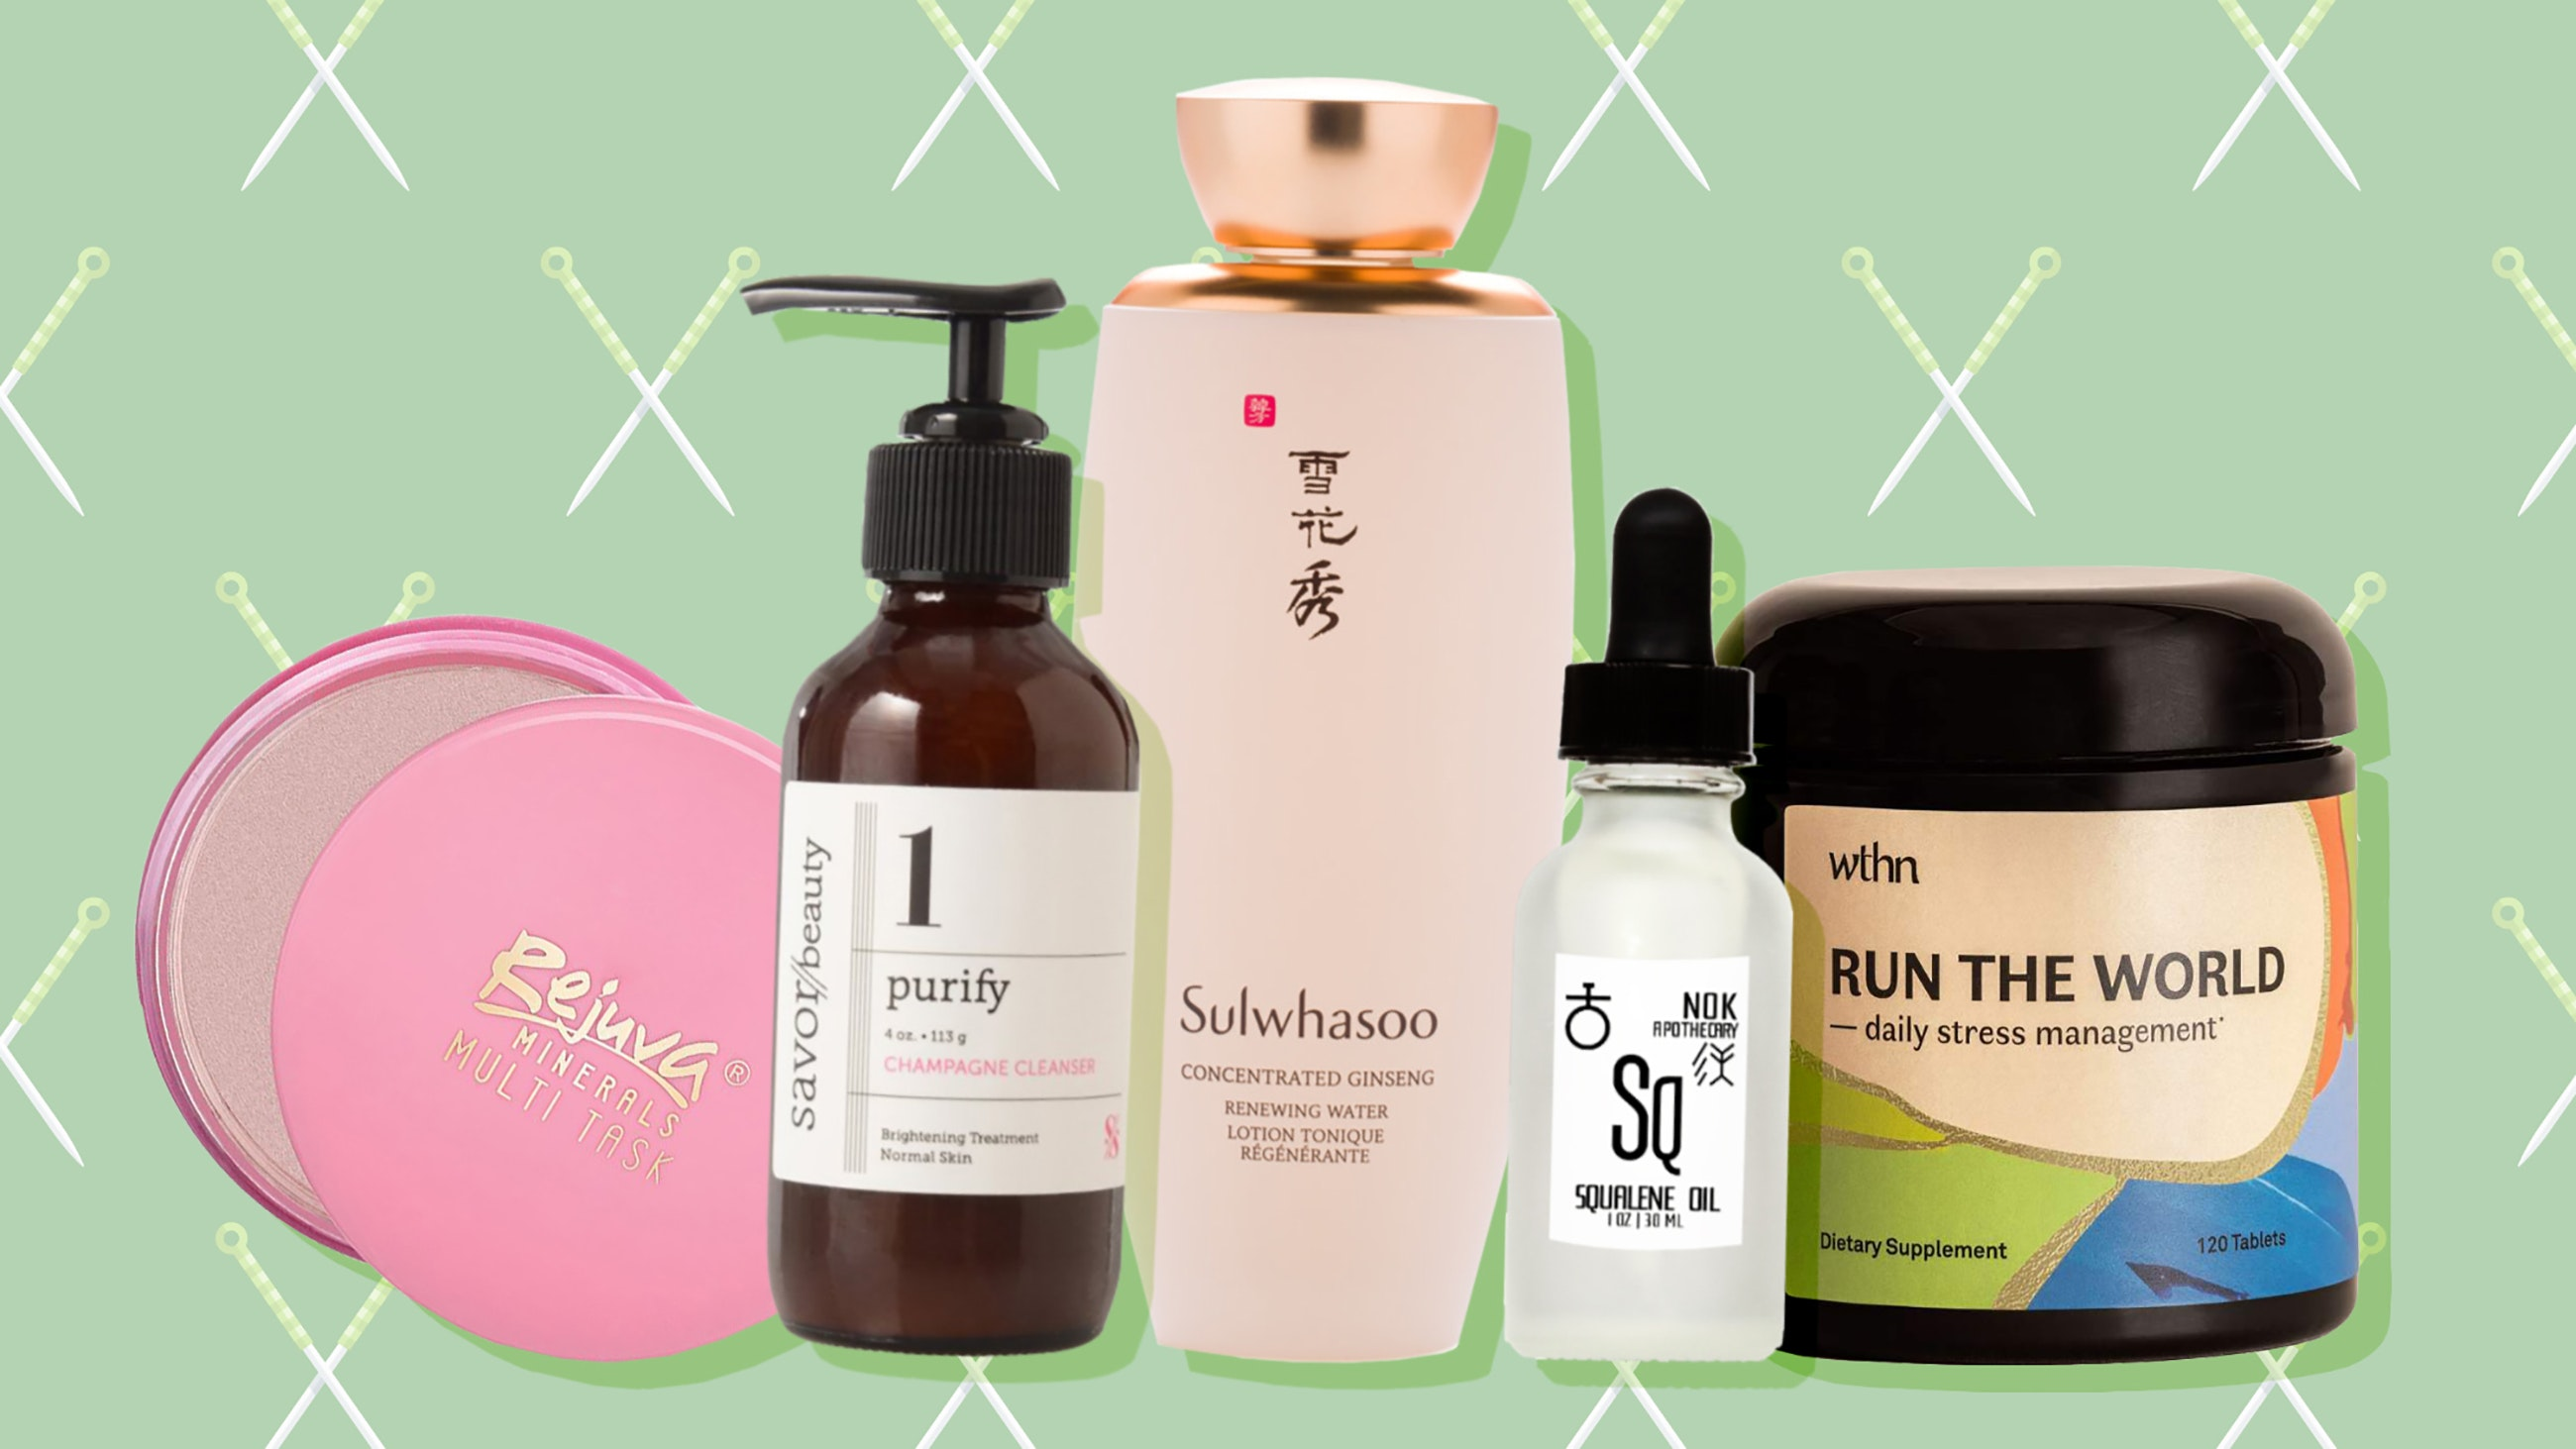 Acupuncturists' favorite natural beauty products